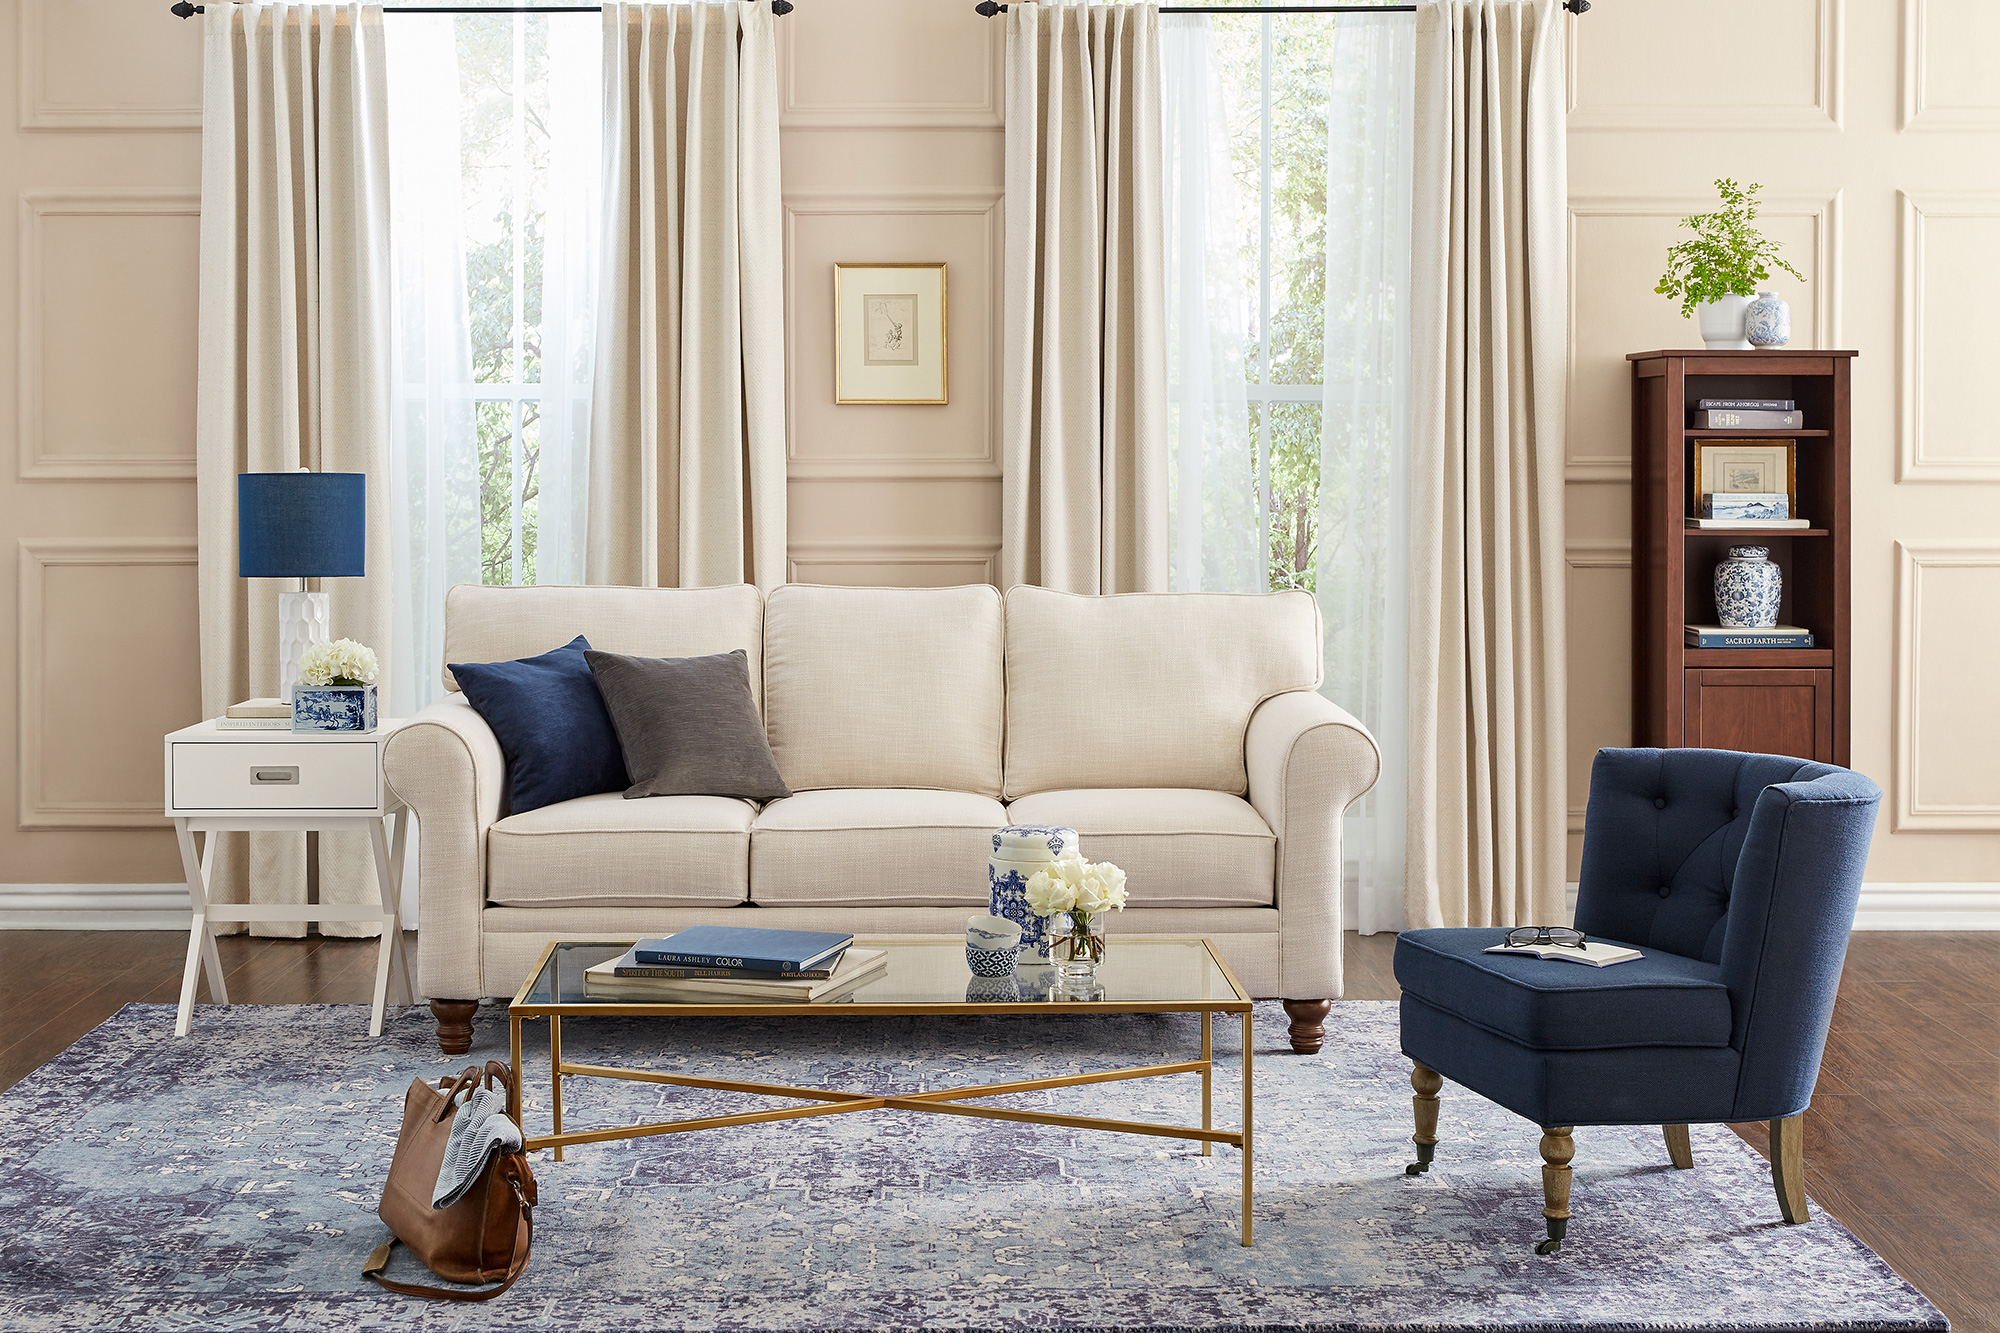 Check Out Some Sweet Savings On Rez Furniture Square (View 21 of 25)